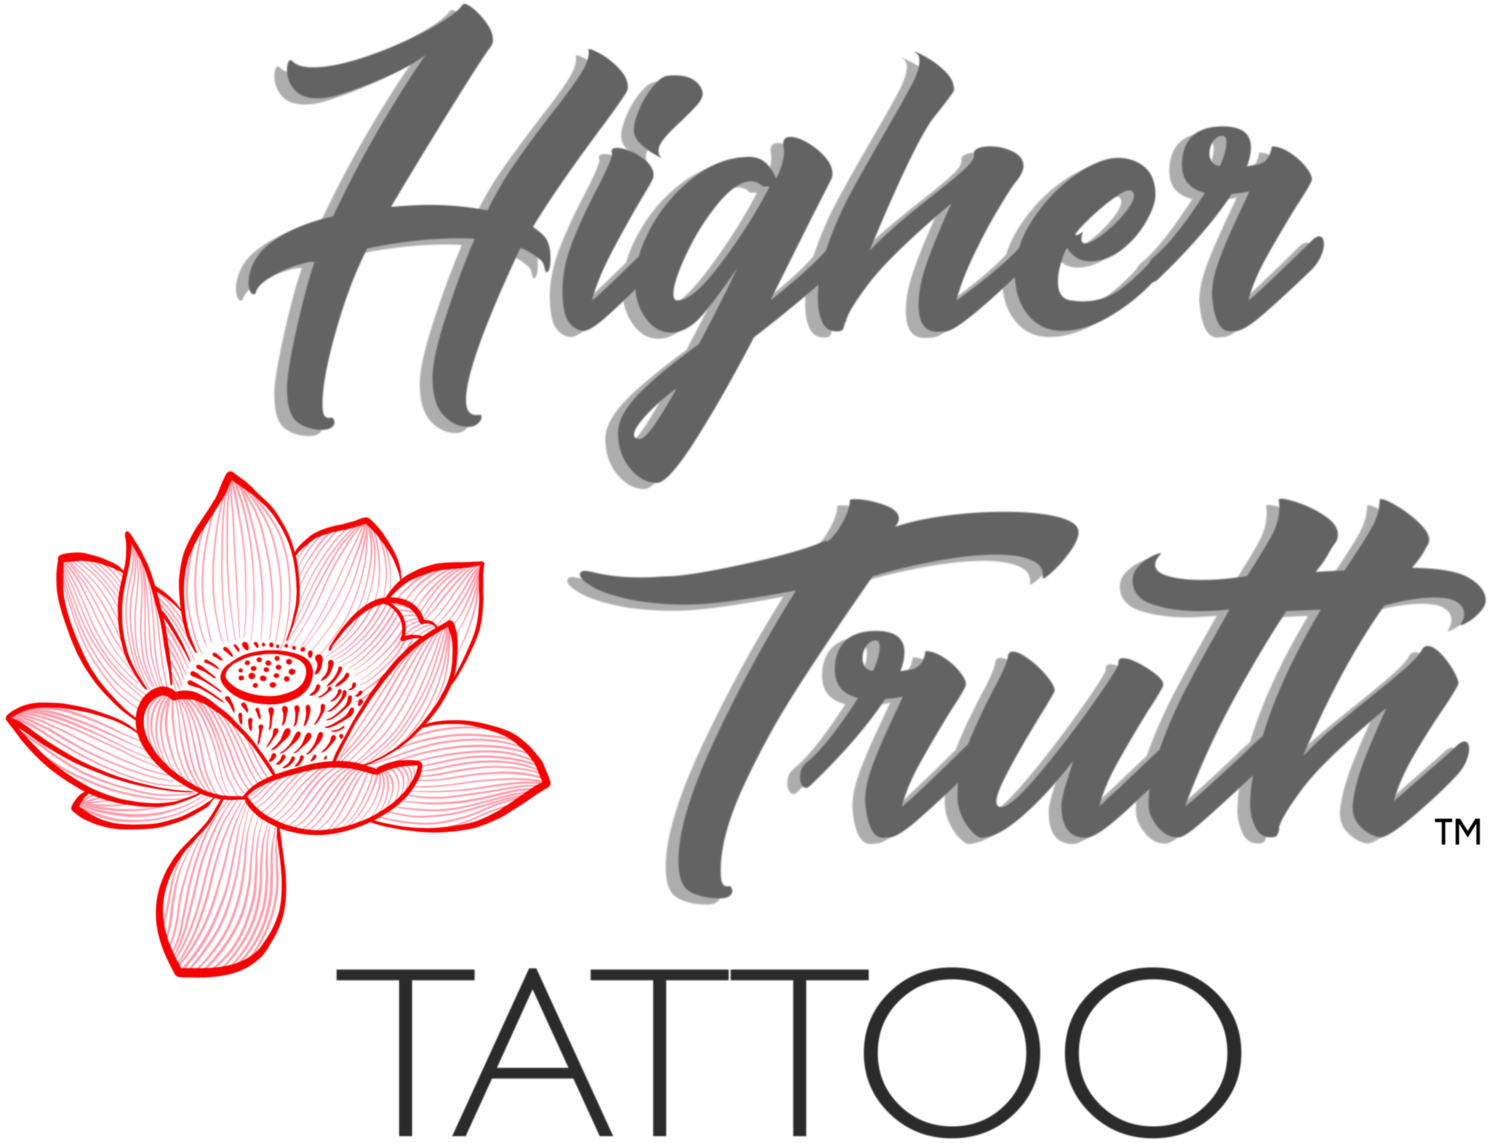 HIGHER TRUTH TATTOO